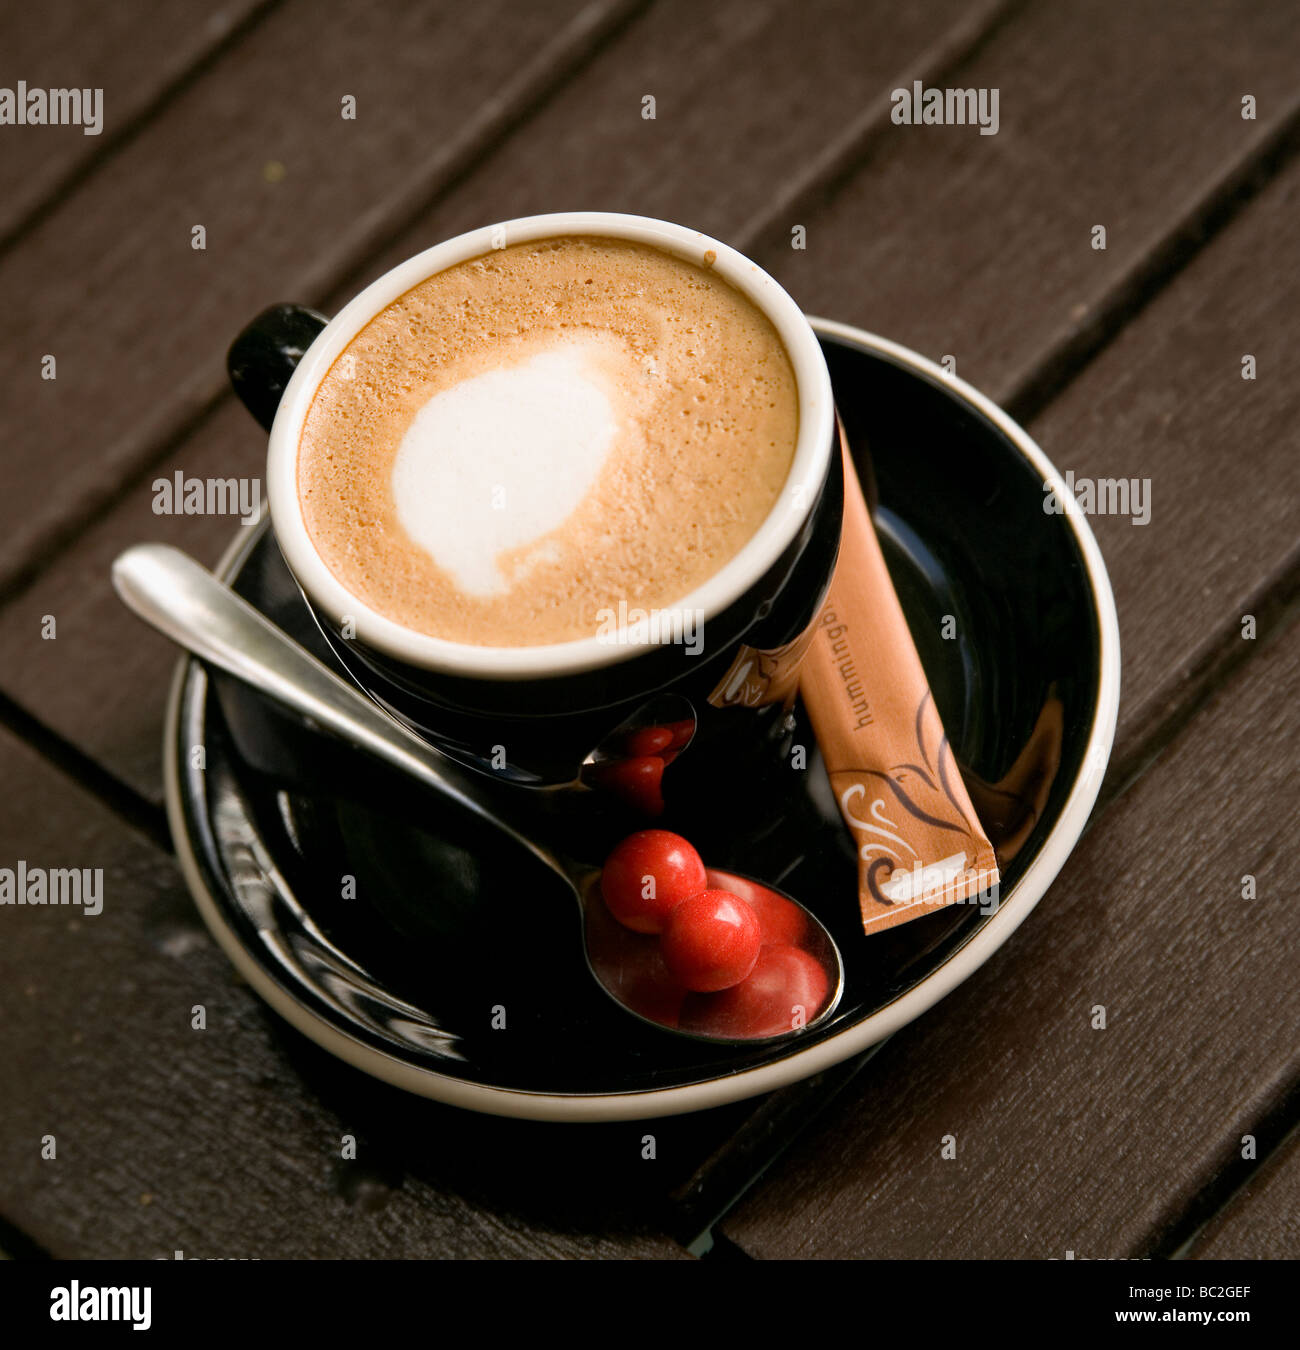 A cup of flat white coffee, a popular drink in New Zealand - Stock Image